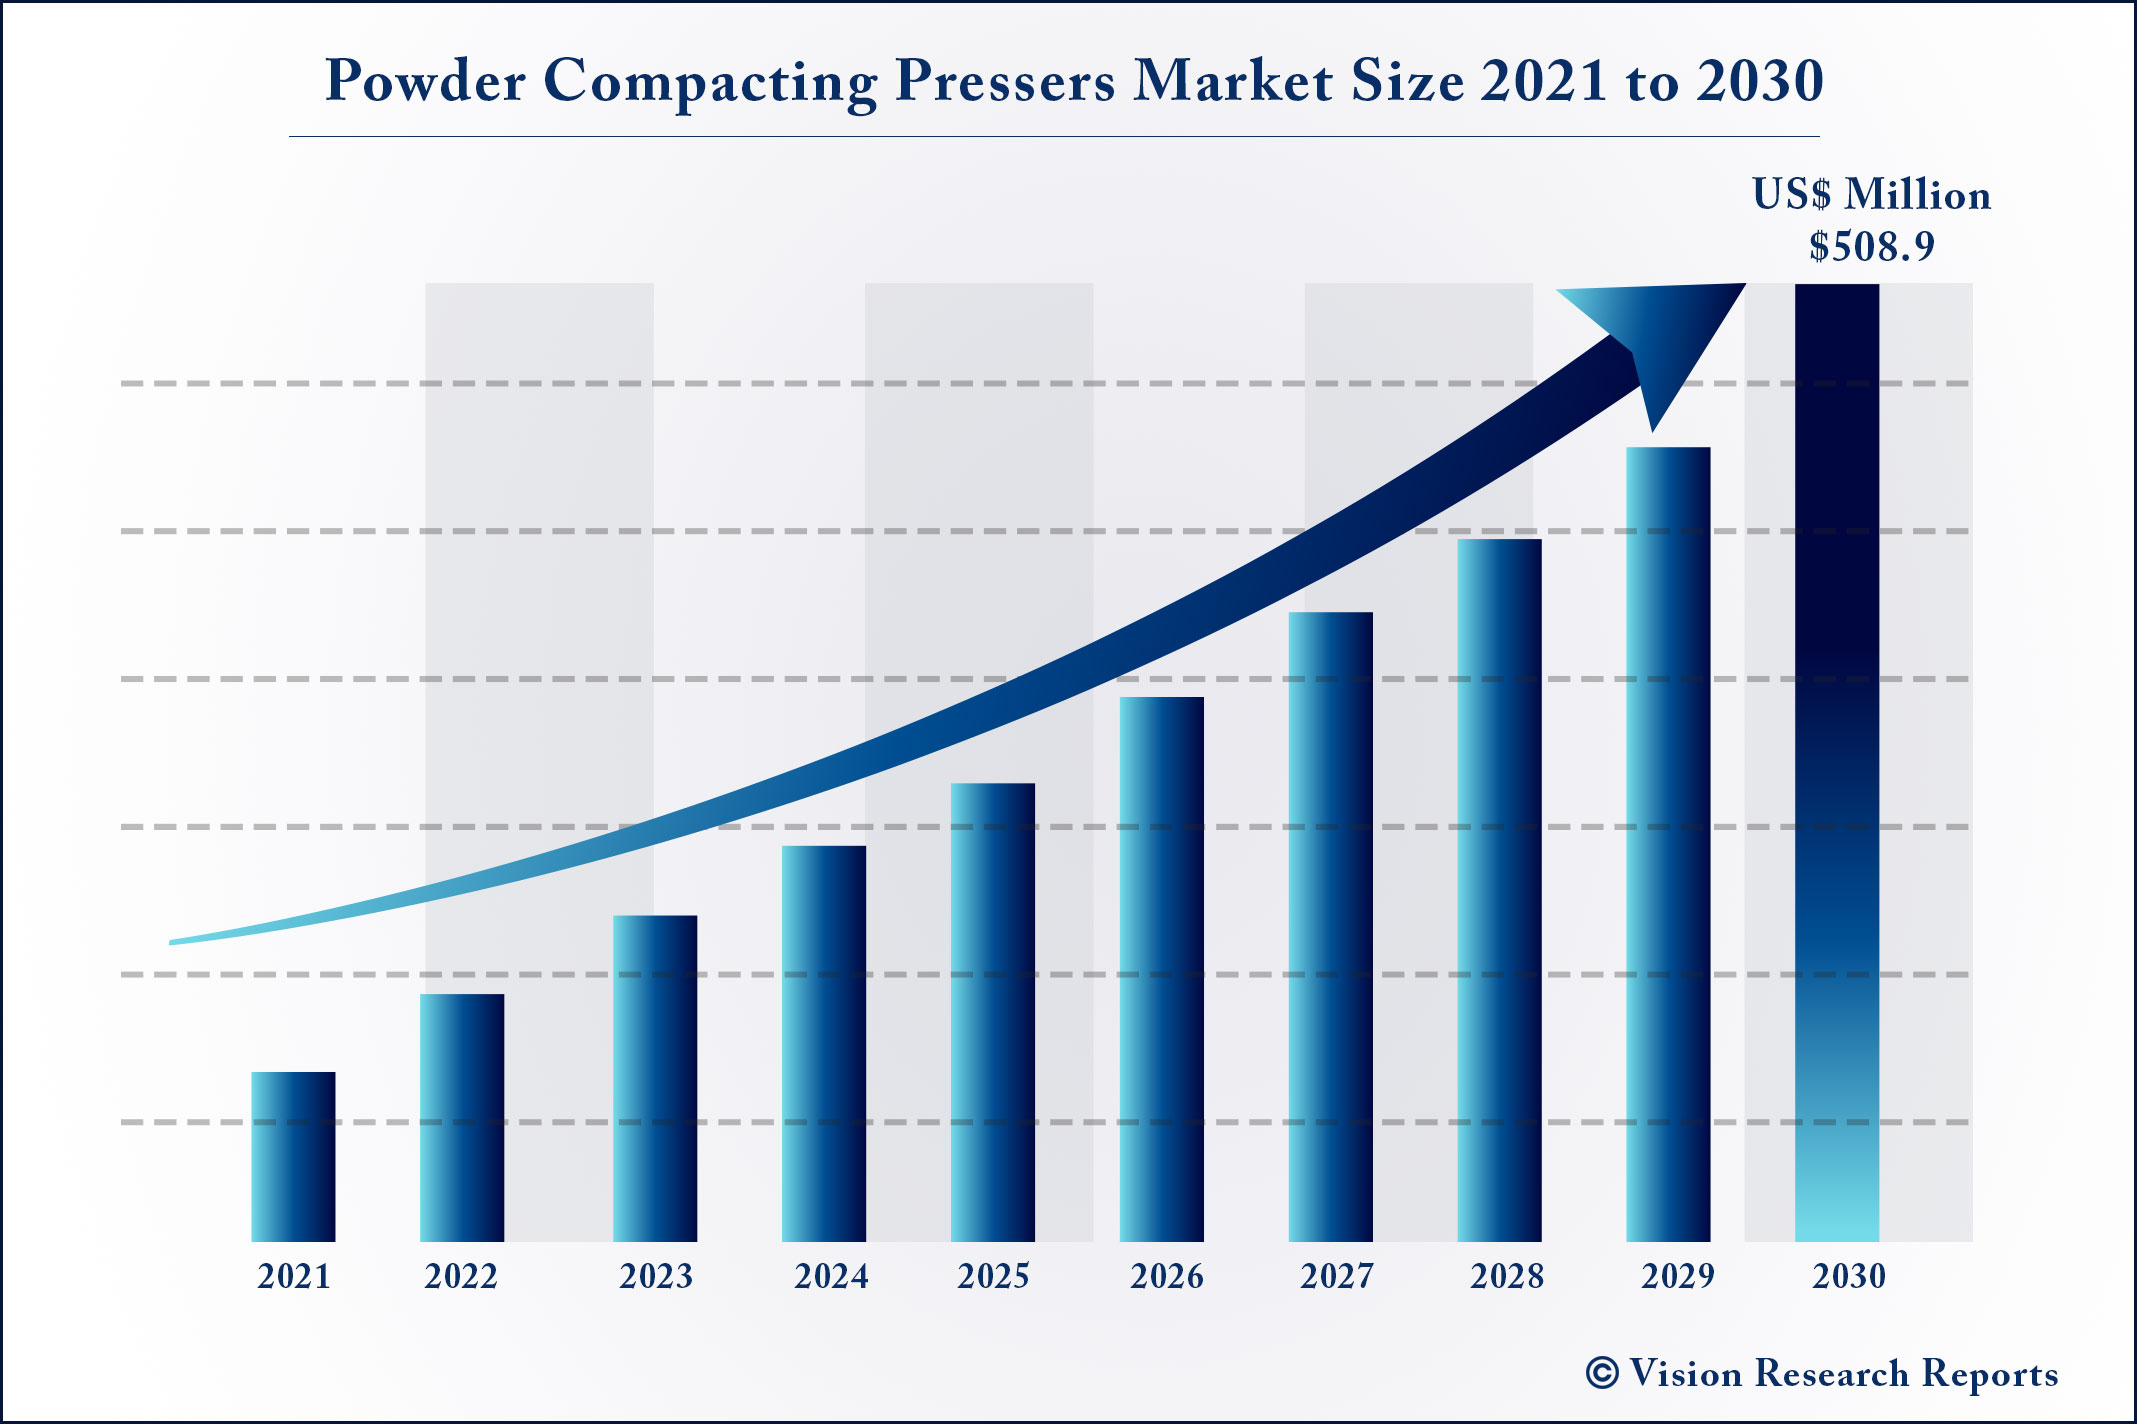 Powder Compacting Pressers Market Size 2021 to 2030